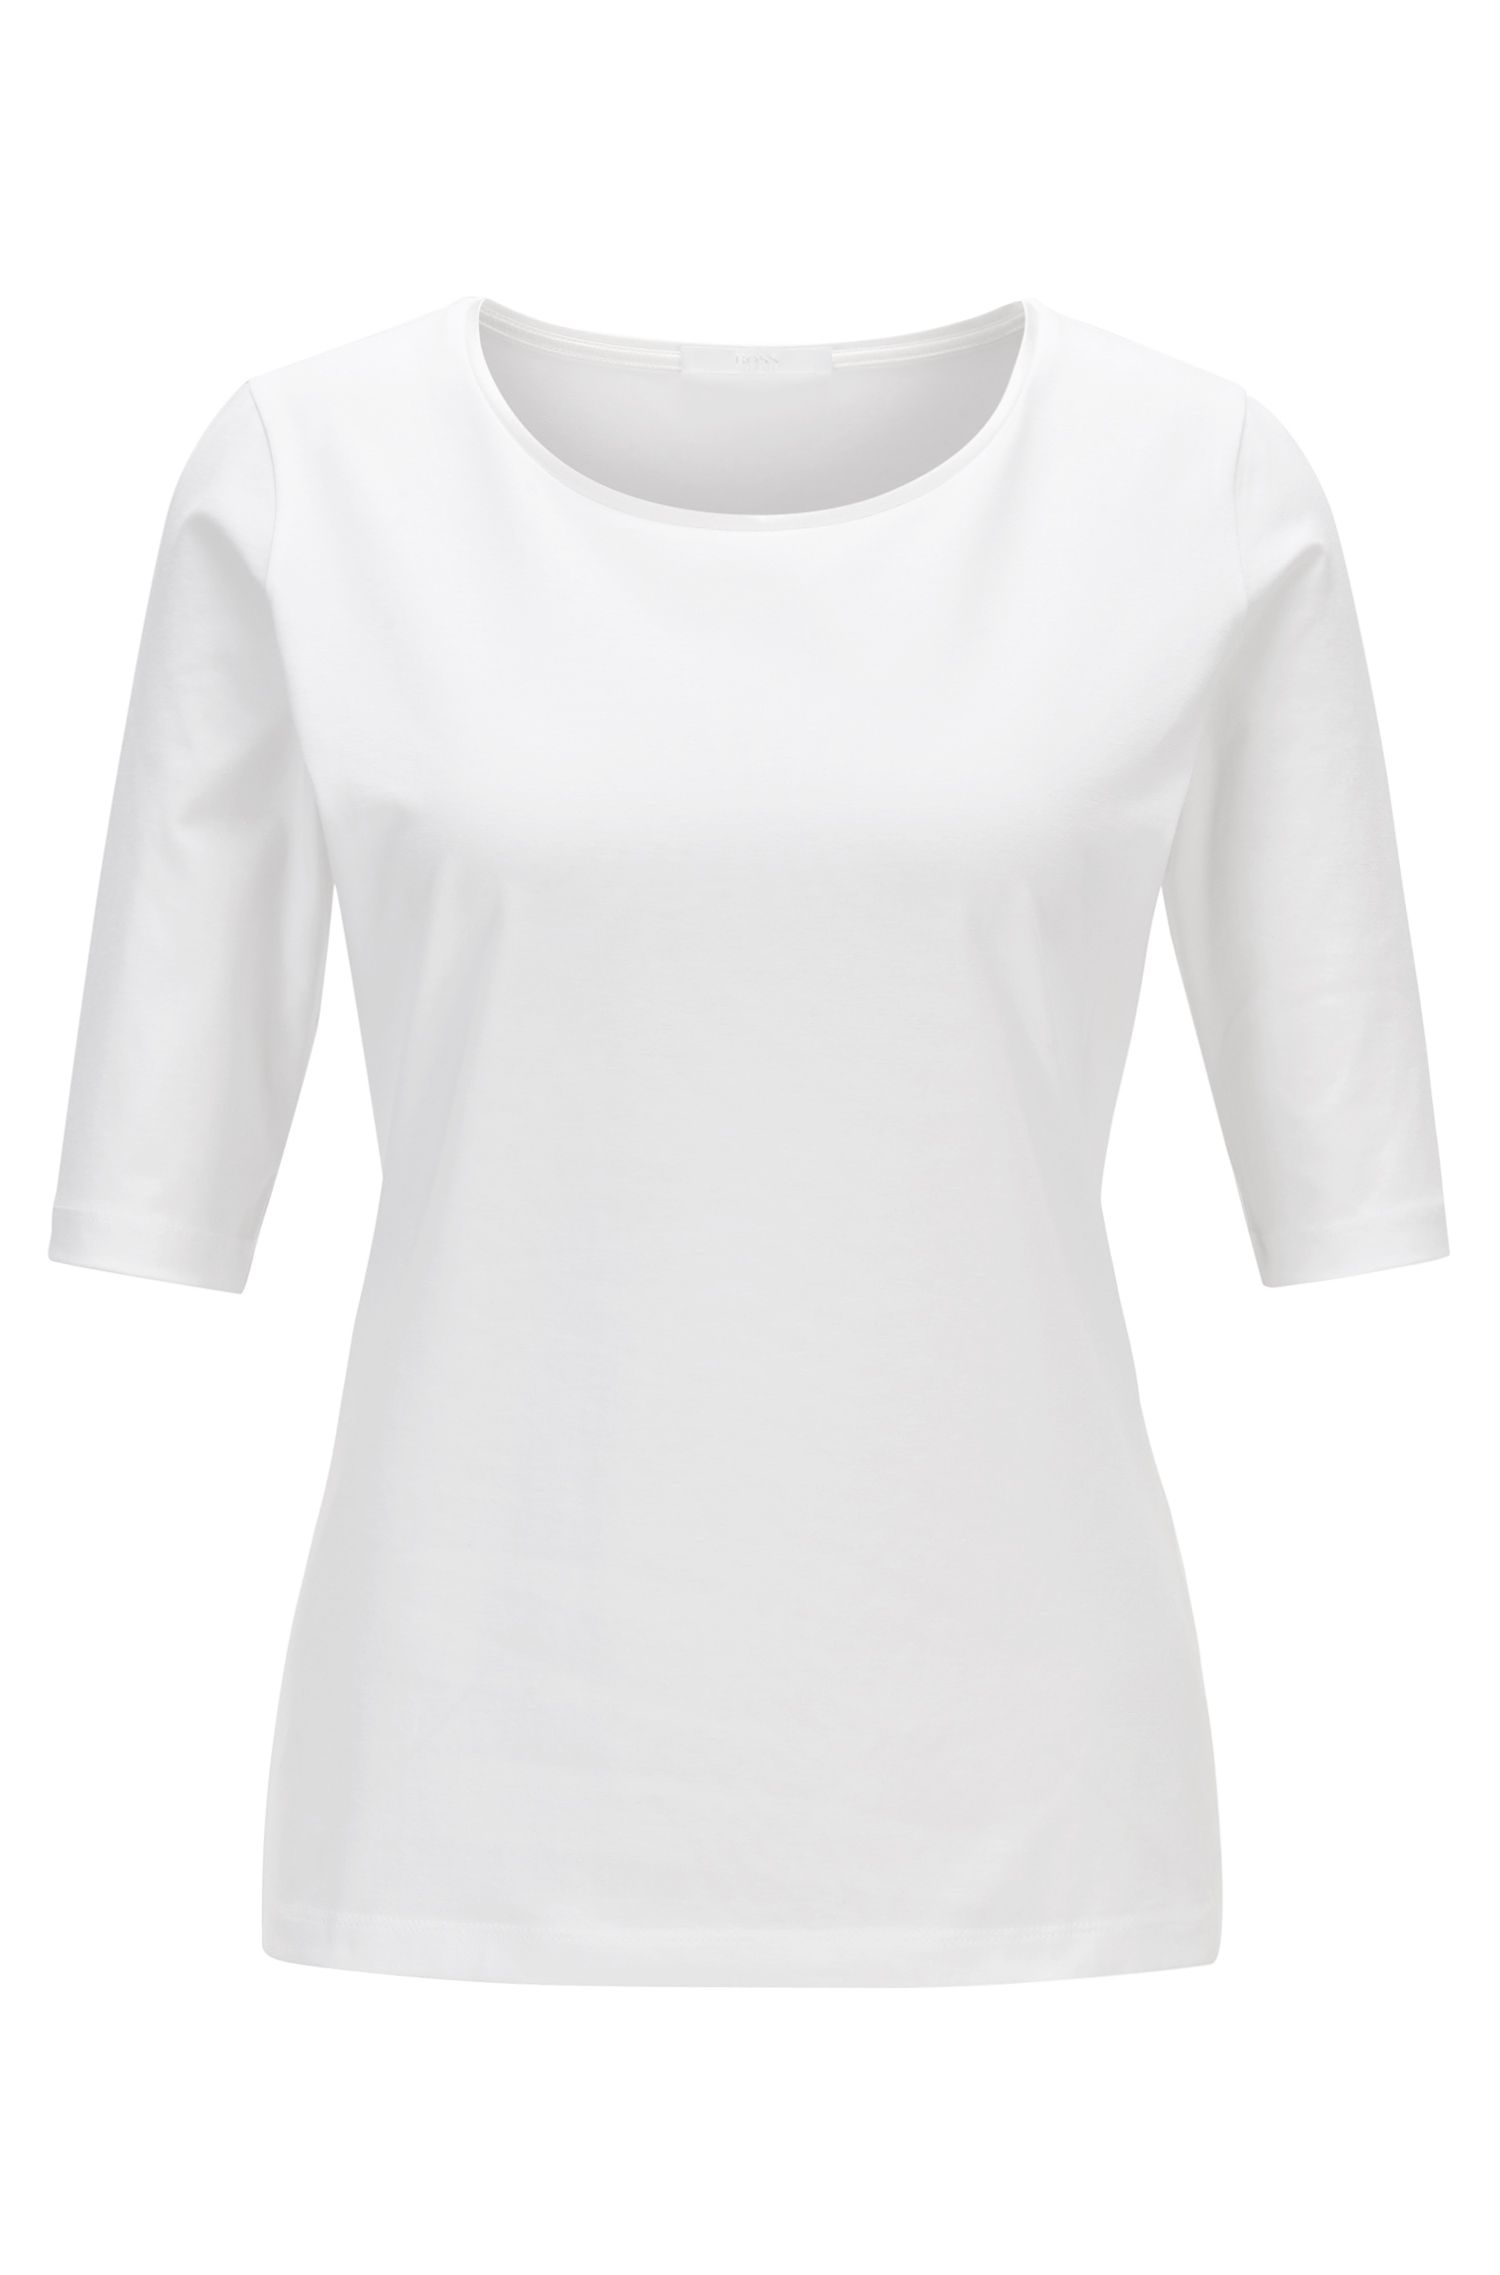 Essential top with silk trim by BOSS Womenswear Fundamentals